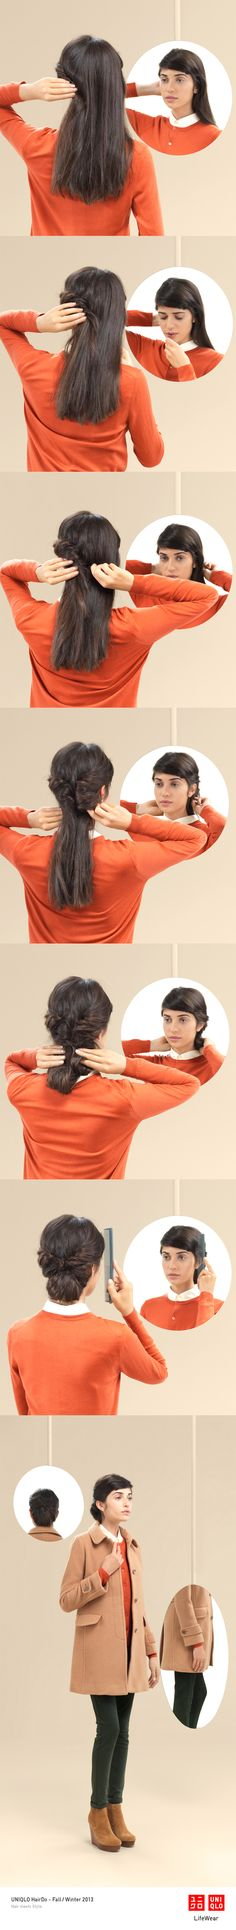 """THE ROUNDING"" : Sophisticated yet simple, this style is perfect with our cashmere sweater. Click the image for DIY instructions! #UpDo #Hair #Hairstyle #DIY #UNIQLO #HairDo"